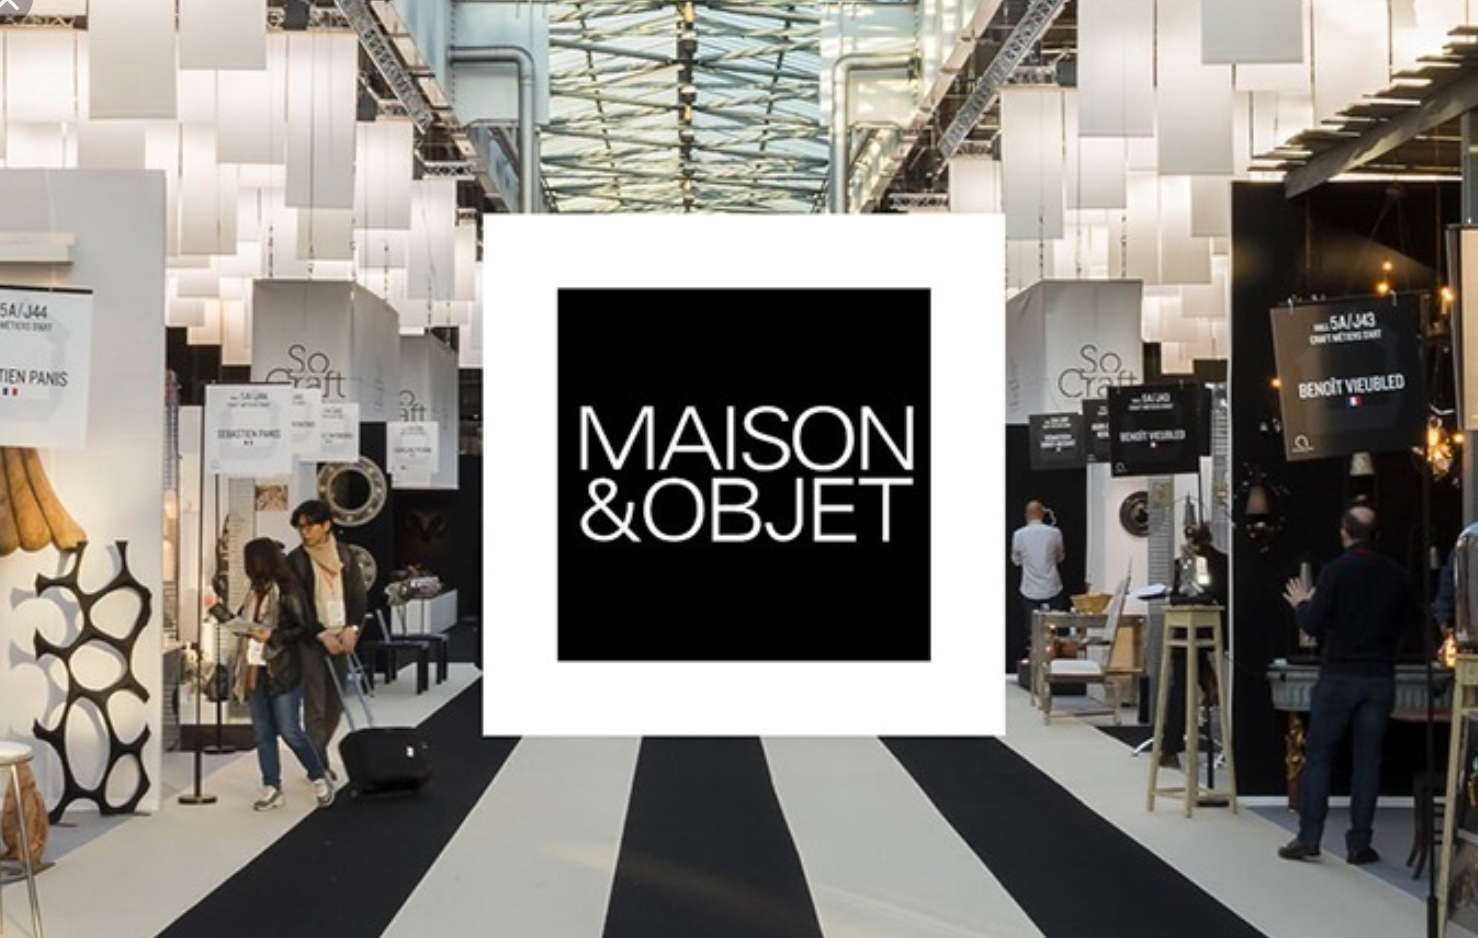 Maison et Objet Trade Show Paris, France